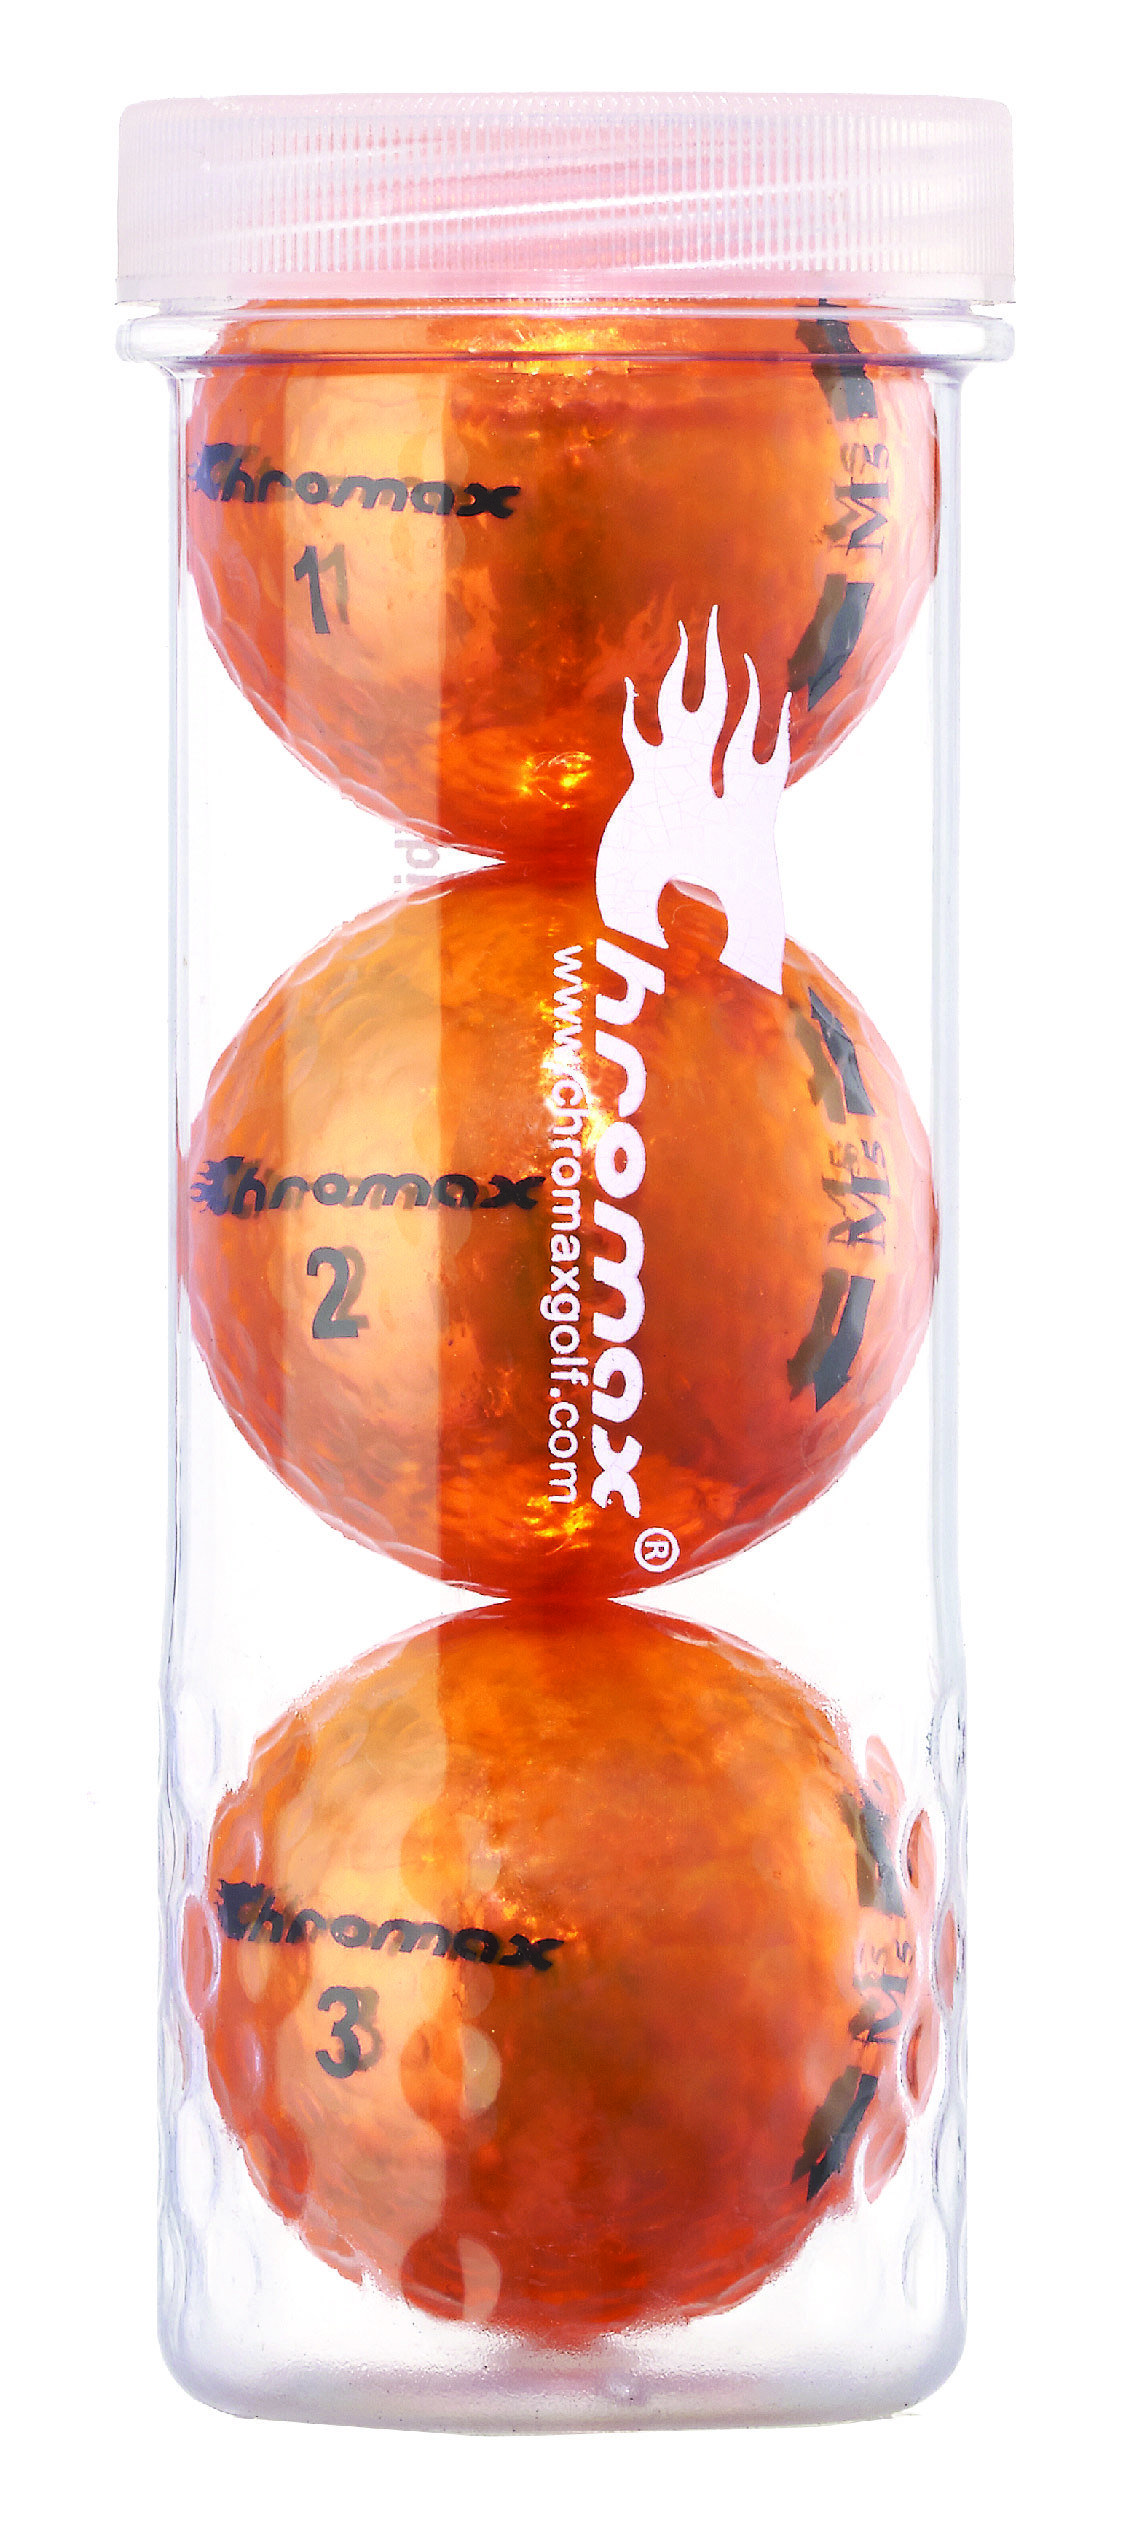 Chromax® Colored Orange Golf Balls - Metallic M5 3 Ball Tube CM53ORG